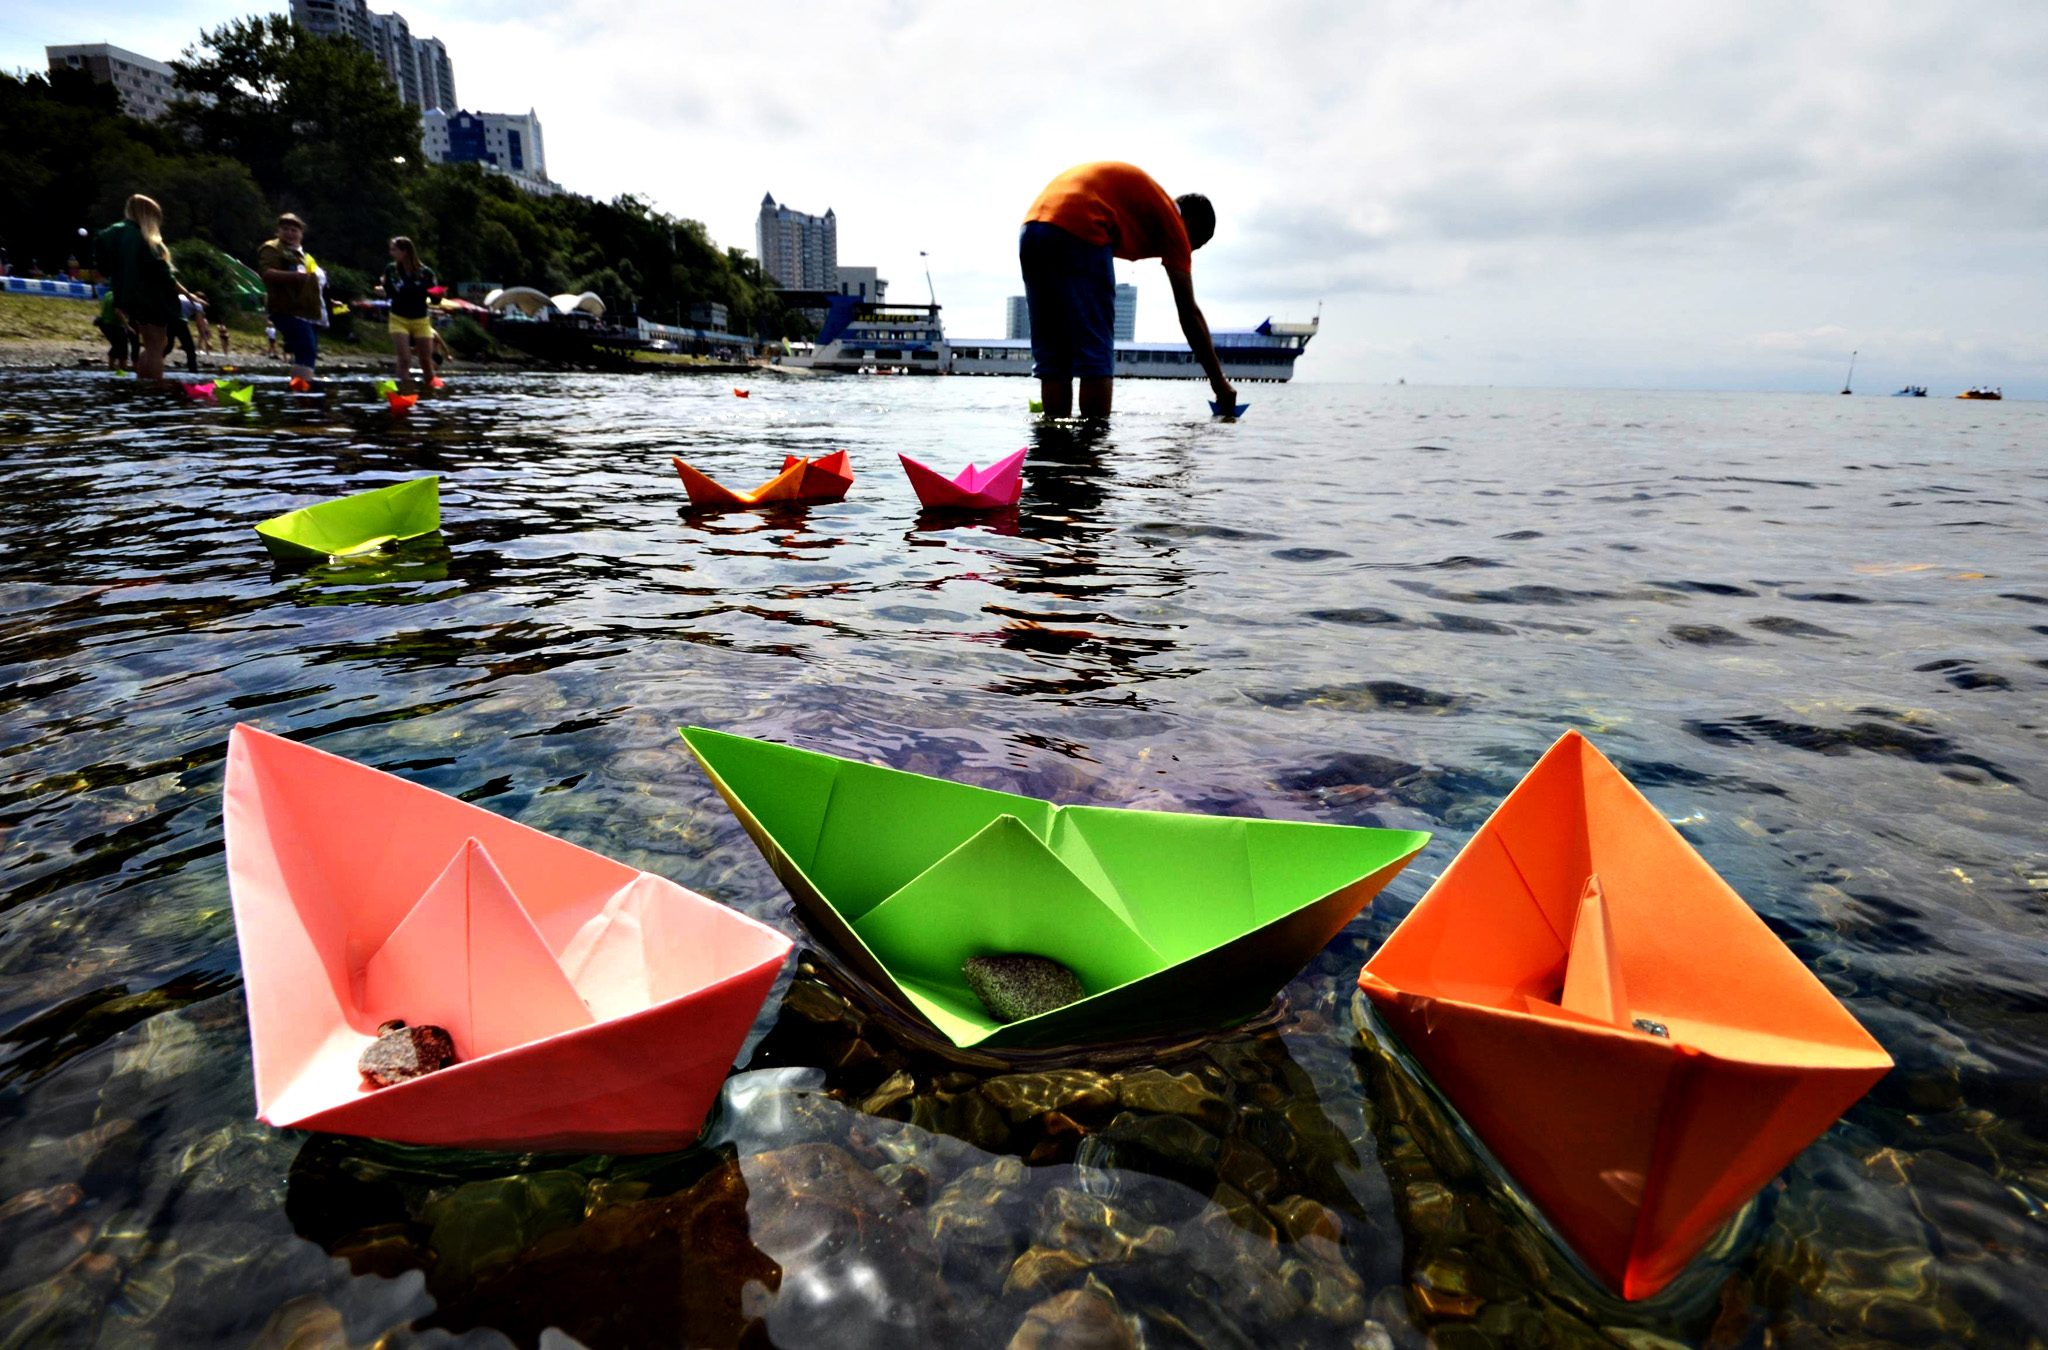 Residents launch paper boats during celebrations for the 69th anniversary of the end of World War Two in the far eastern city of Vladivostok, September 2, 2014. The holiday, marking the victory over Japan in World War II, is a Russian national memorial day, established by then President Dmitry Medvedev and approved by the Russian State Duma and the Federation Council on July 23, 2010.